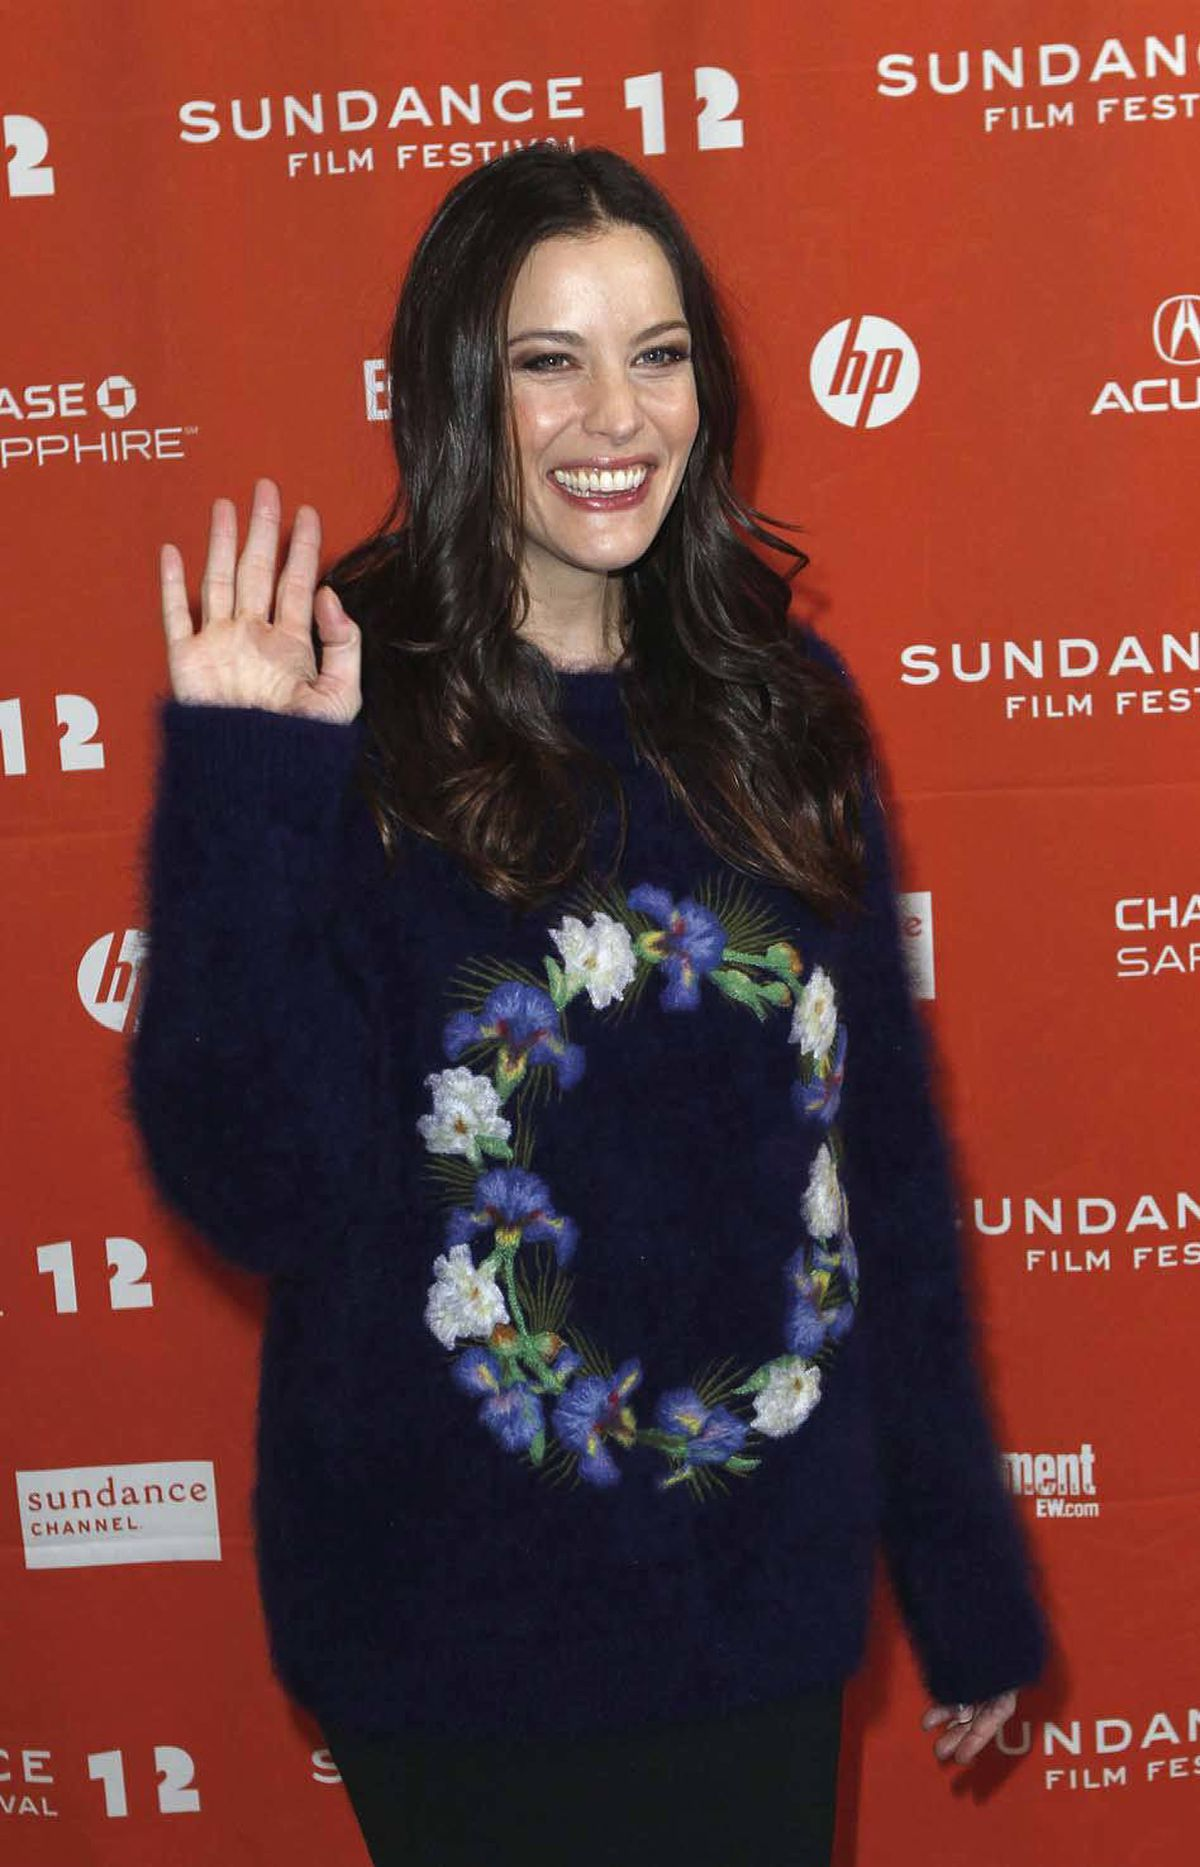 Okay, here goes. Either Liv Tyler has given up on life or she needs to fire her stylist at the Sundance Film Festival.